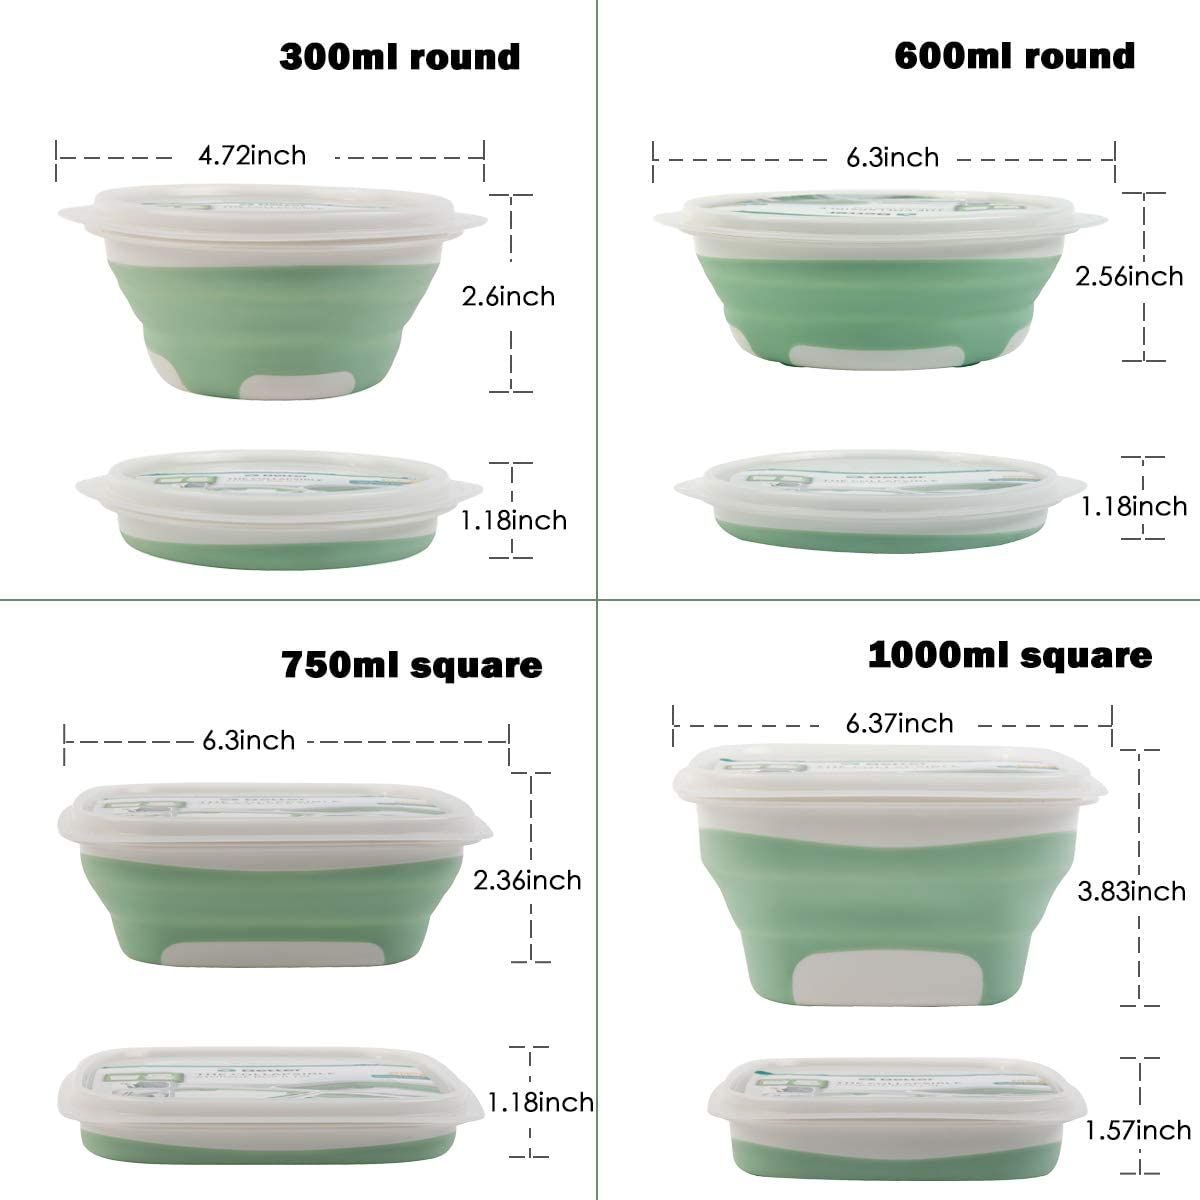 Dry natural silicone food containers